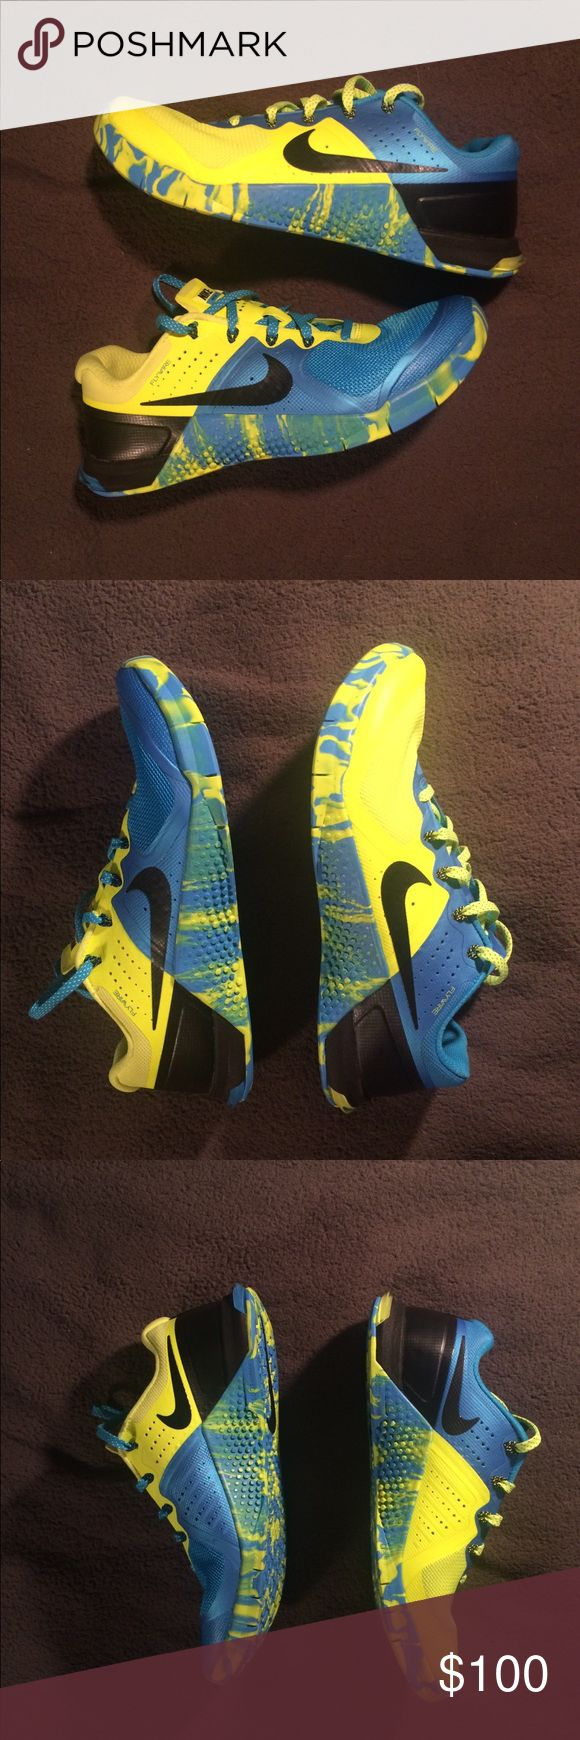 Nike Metcon 2 Amplify training shoes blue yellow Brand new, never worn. Super cool and vibrant shoes from the Nike Training line. MSRP $140. Market value is about $110+ shipping on these if you go to eBay and the like, so be sure to get the best price from me! Be sure to check out my Closet and filter by your size to see what else I'm offering! Thanks! Nike Shoes Athletic Shoes